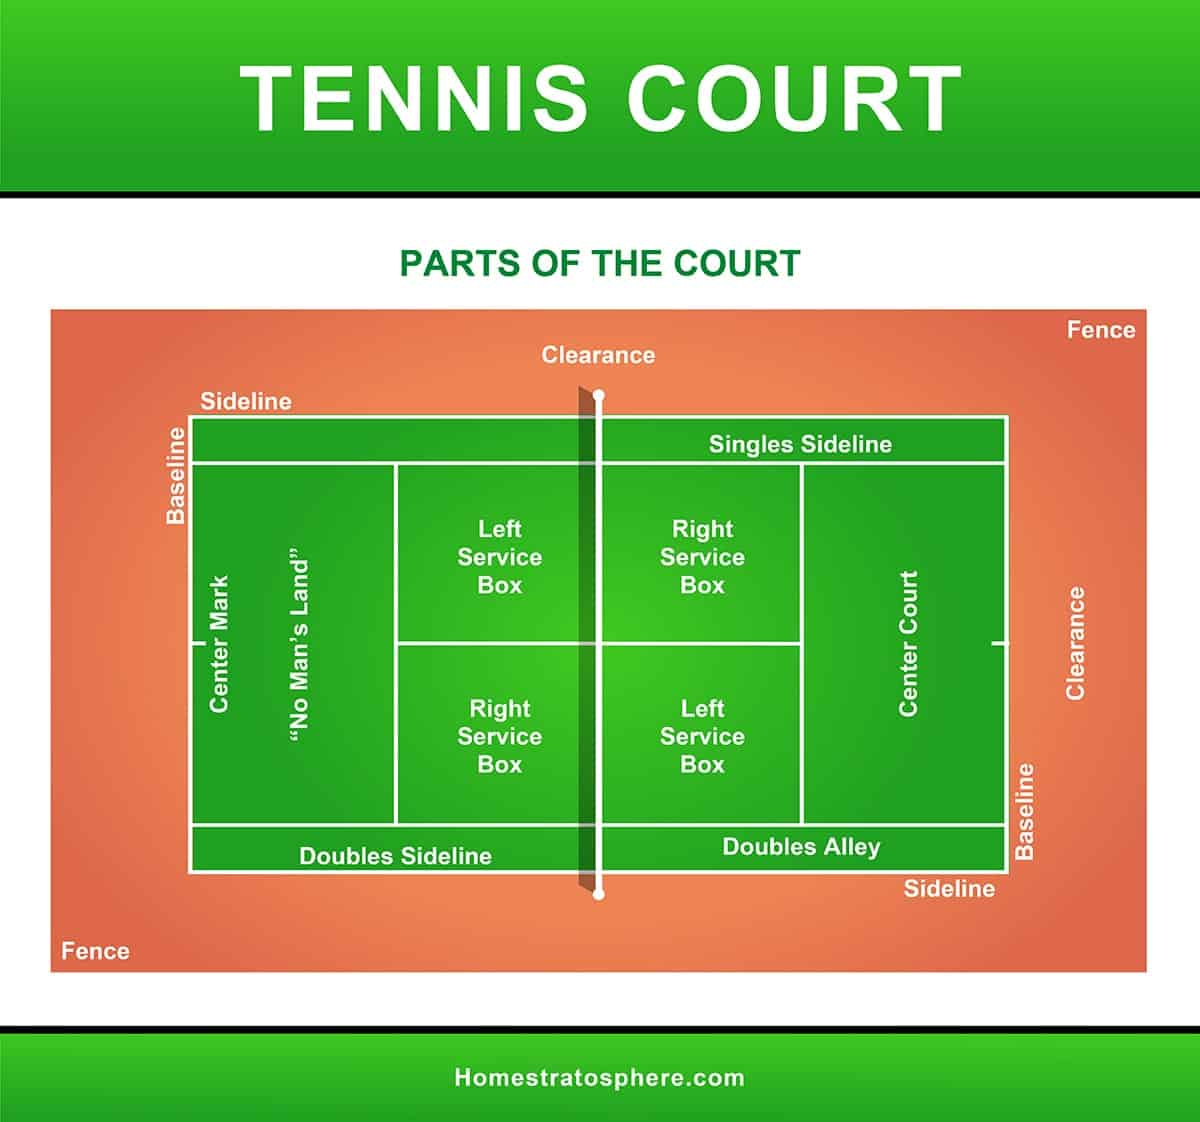 Diagram setting out the different parts of a tennis court